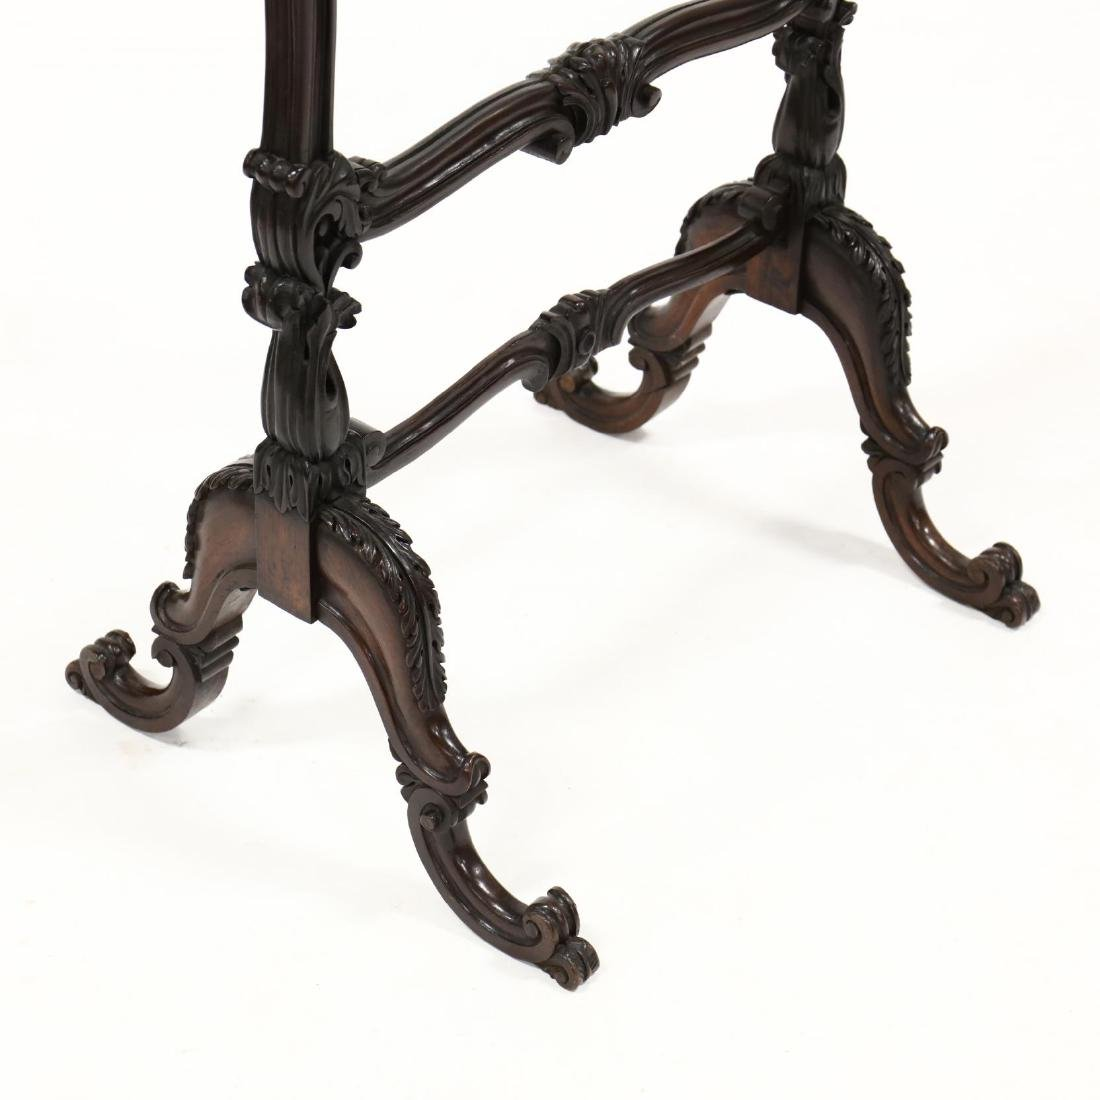 Rococo Revival Carved Rosewood Fire Screen - 2